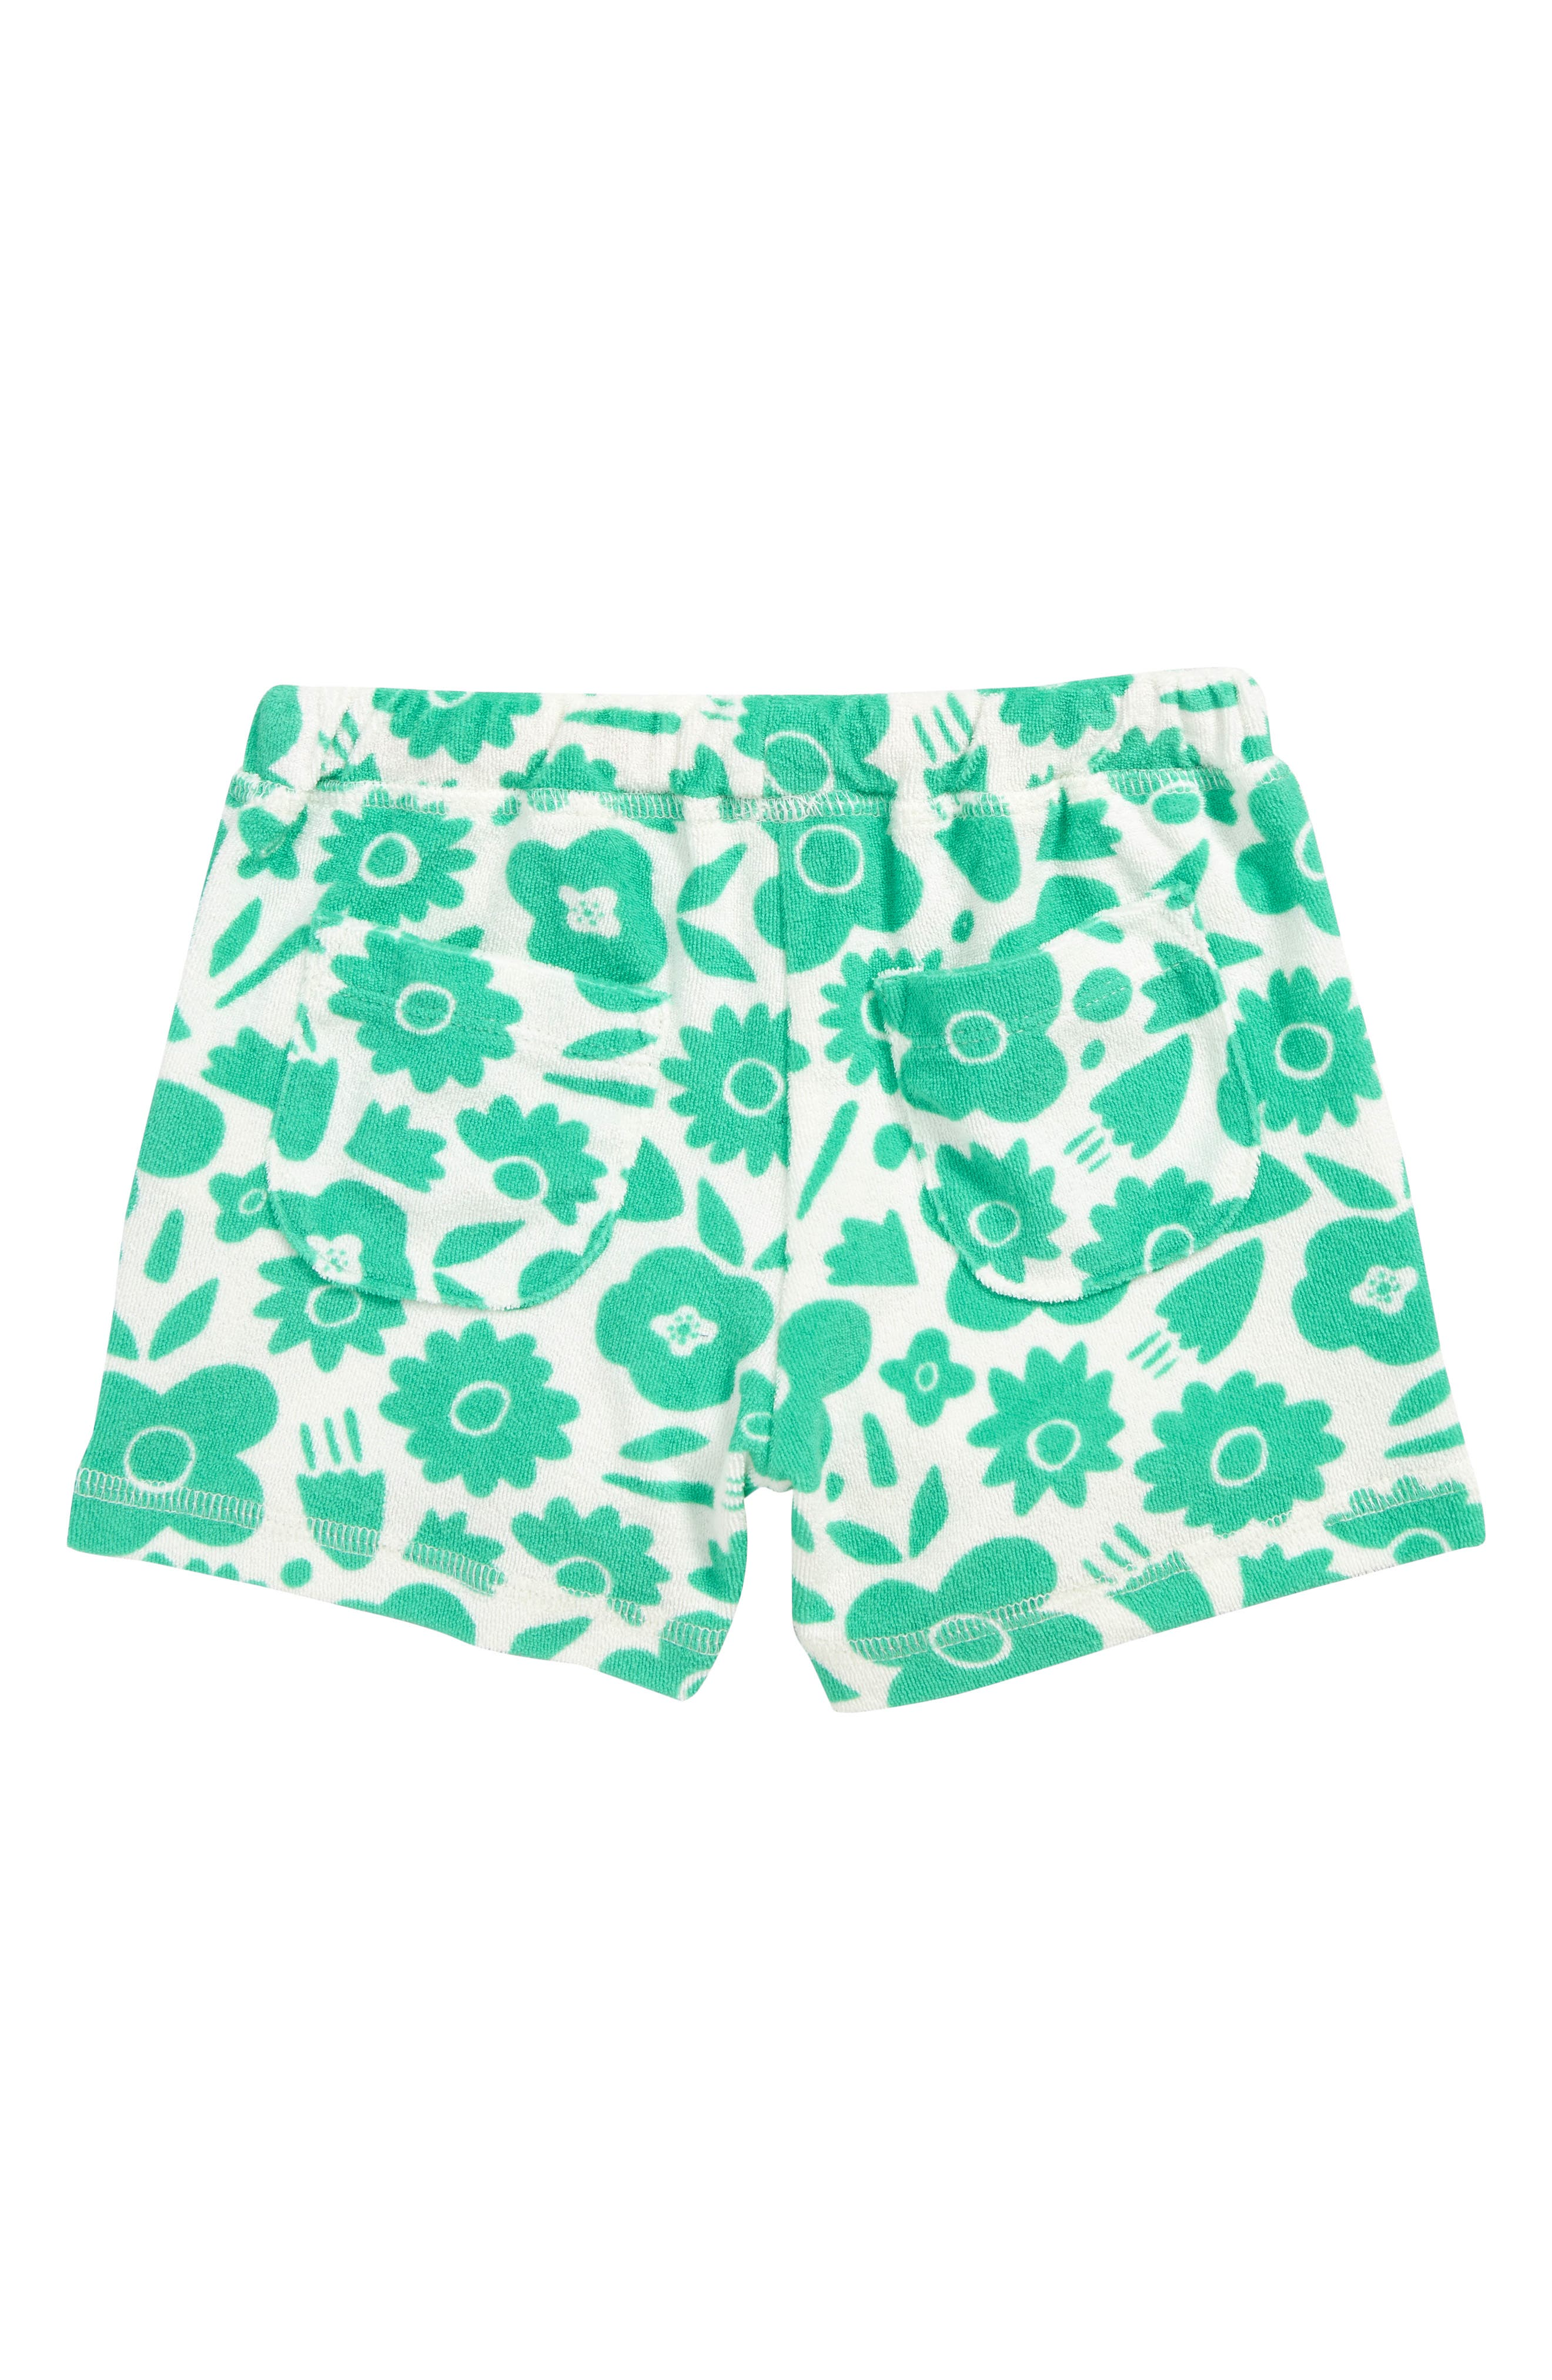 MINI BODEN, Terry Cloth Shorts, Alternate thumbnail 2, color, GRN JUNGLE GREEN POP FLORAL